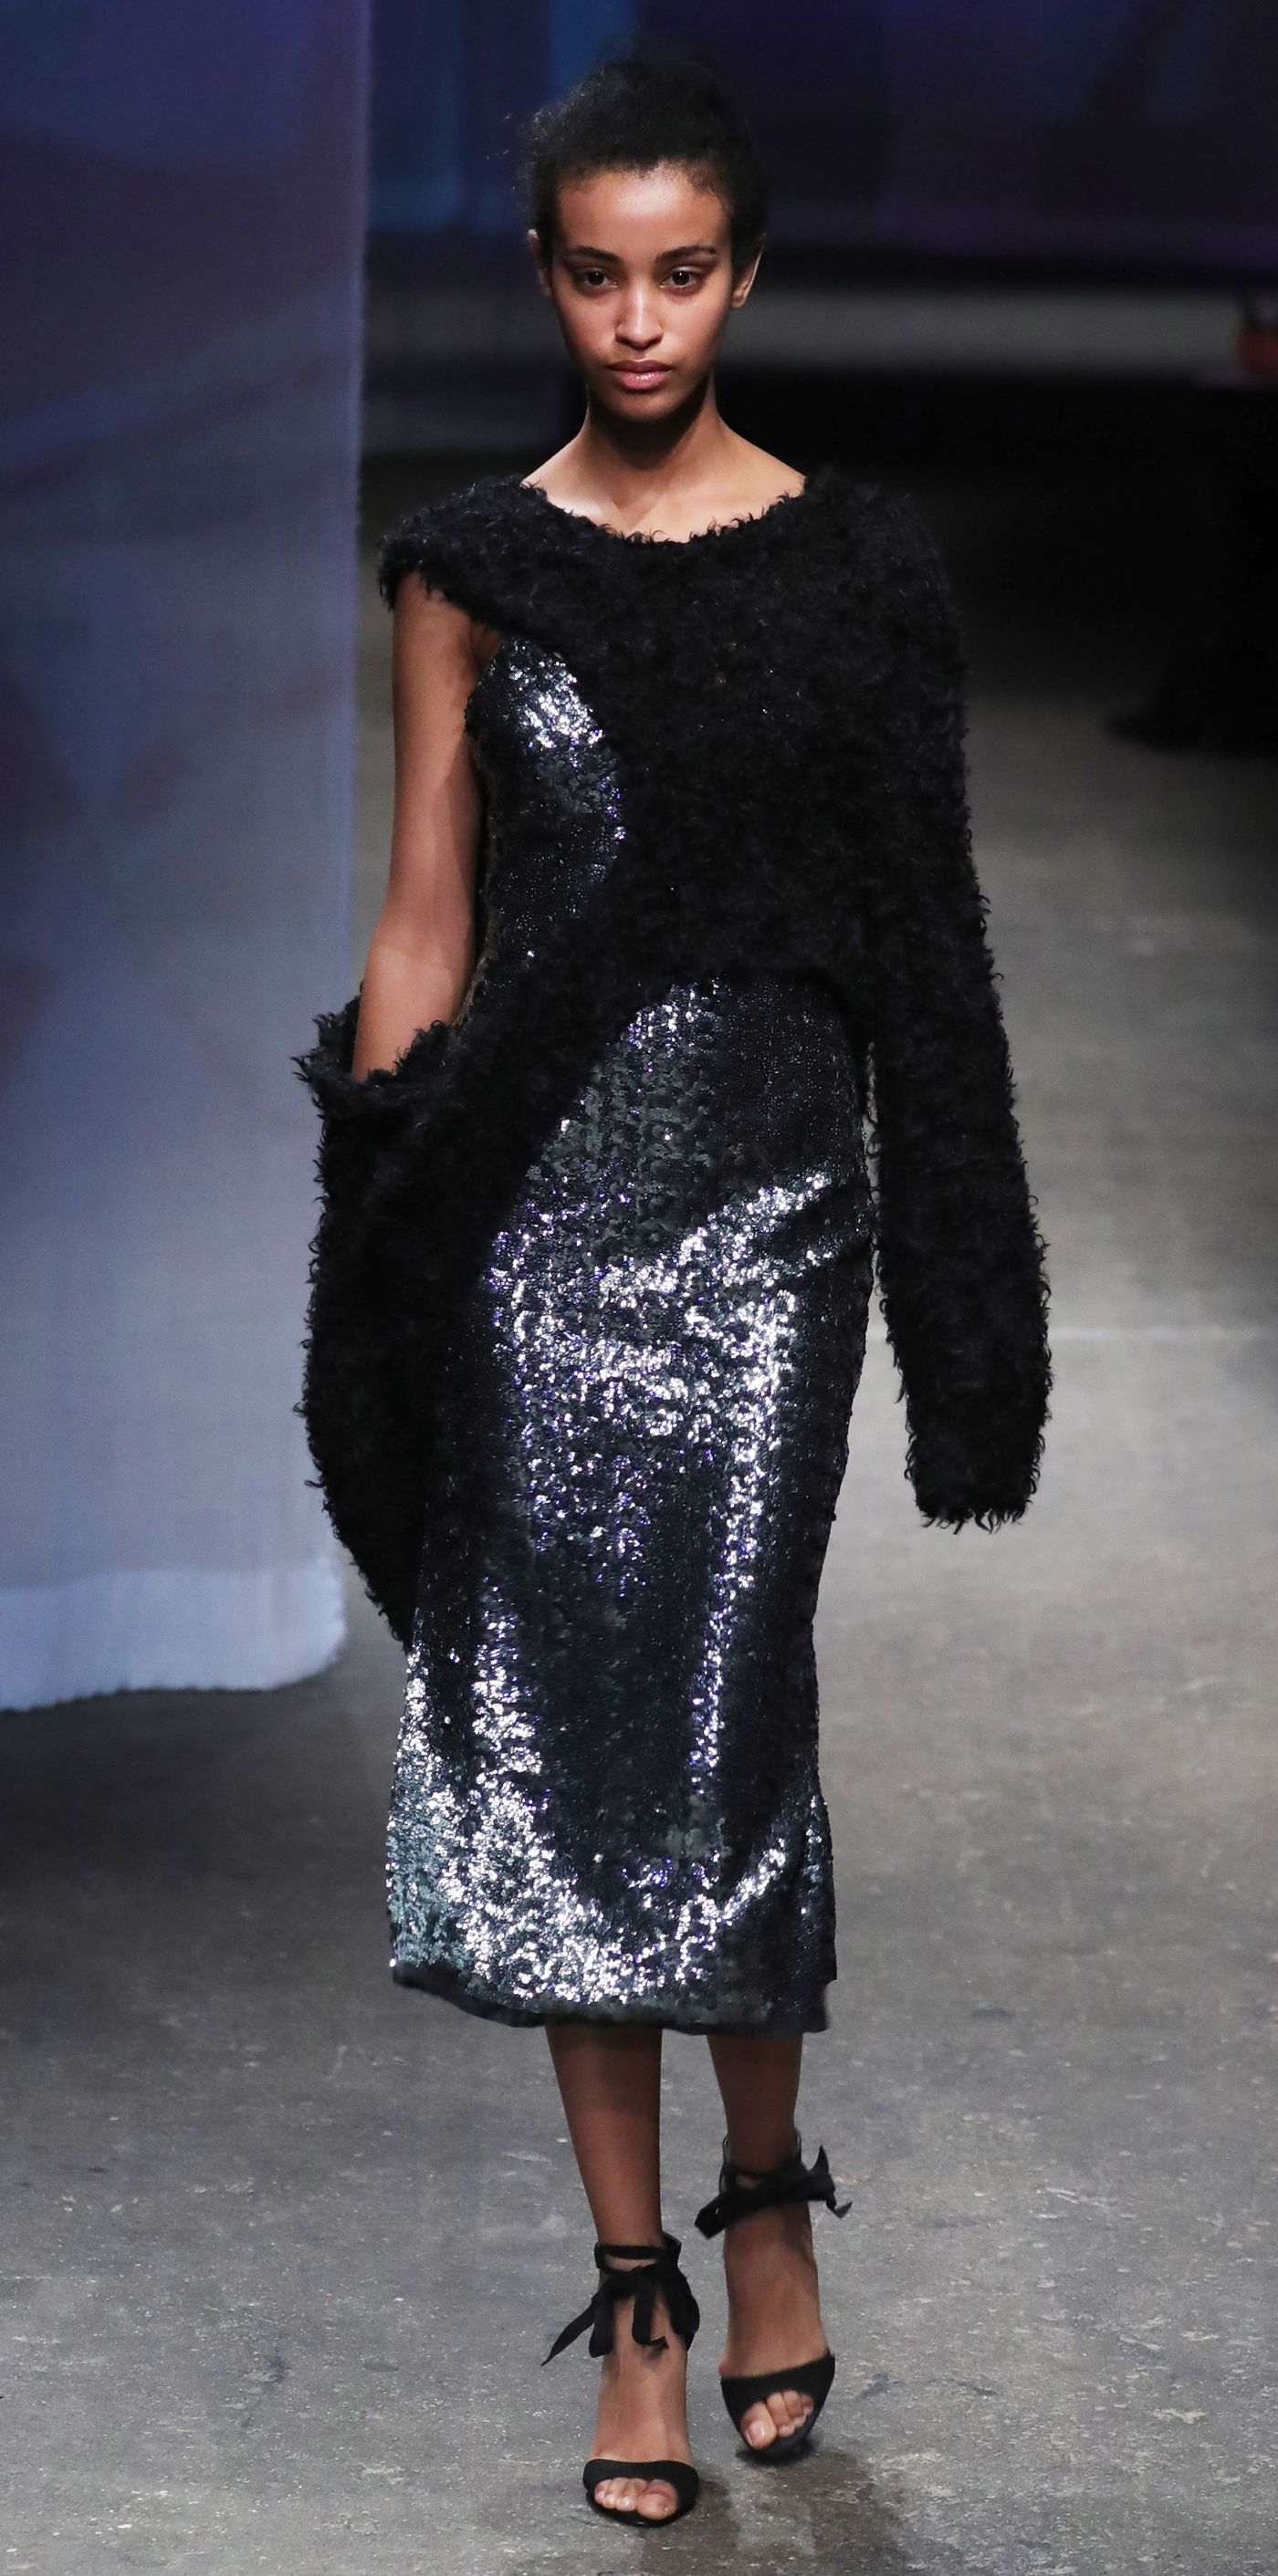 df4f82b37af Beautiful Black Models on the Runway at New York Fashion Week - Milly from  InStyle.com